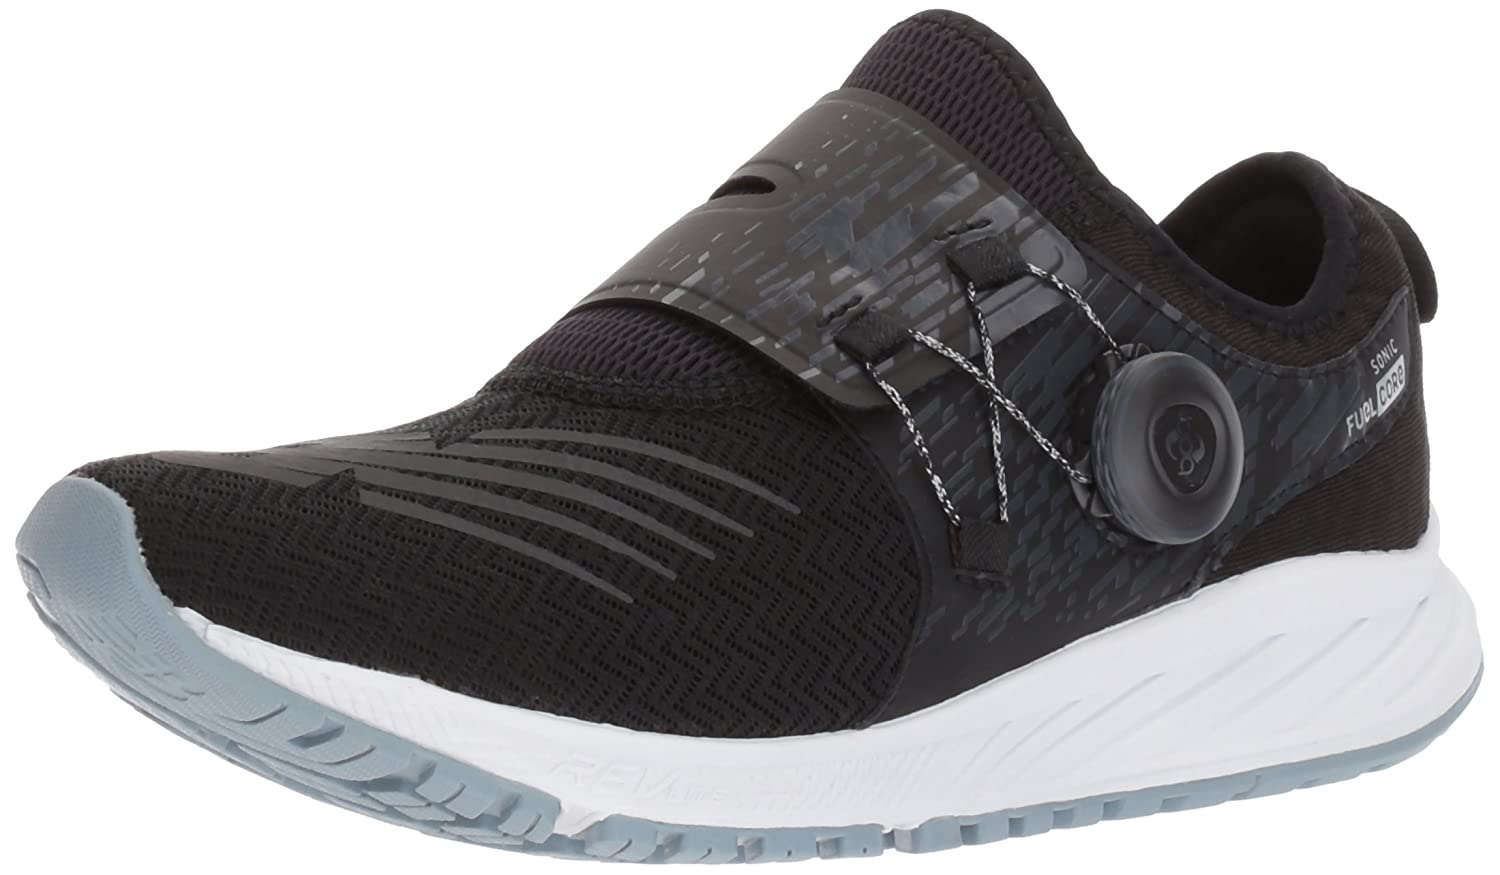 New Balance Women's Sonic V1 Running Shoe B01MRN3UUK 10 D US|Black/Silver